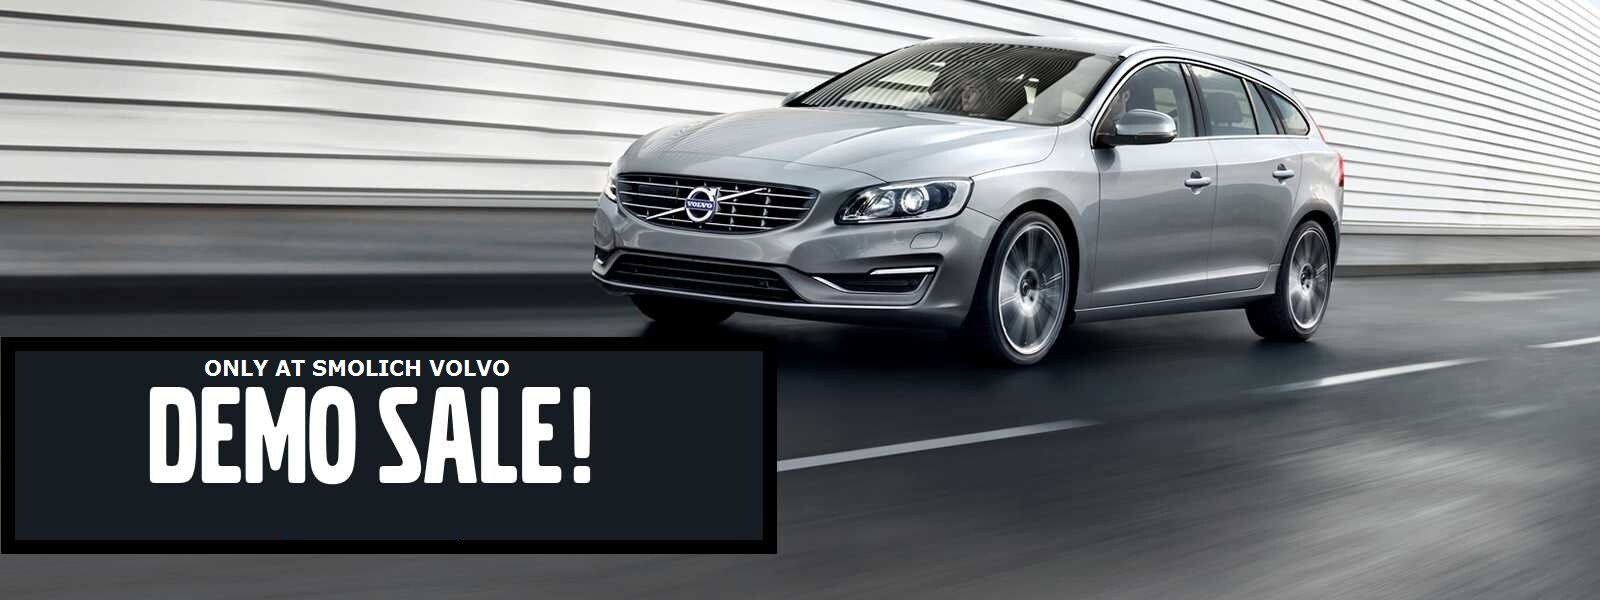 Demo and Retired Loaner Vehicles on Sale at Smolich Volvo Cars in Bend, OR